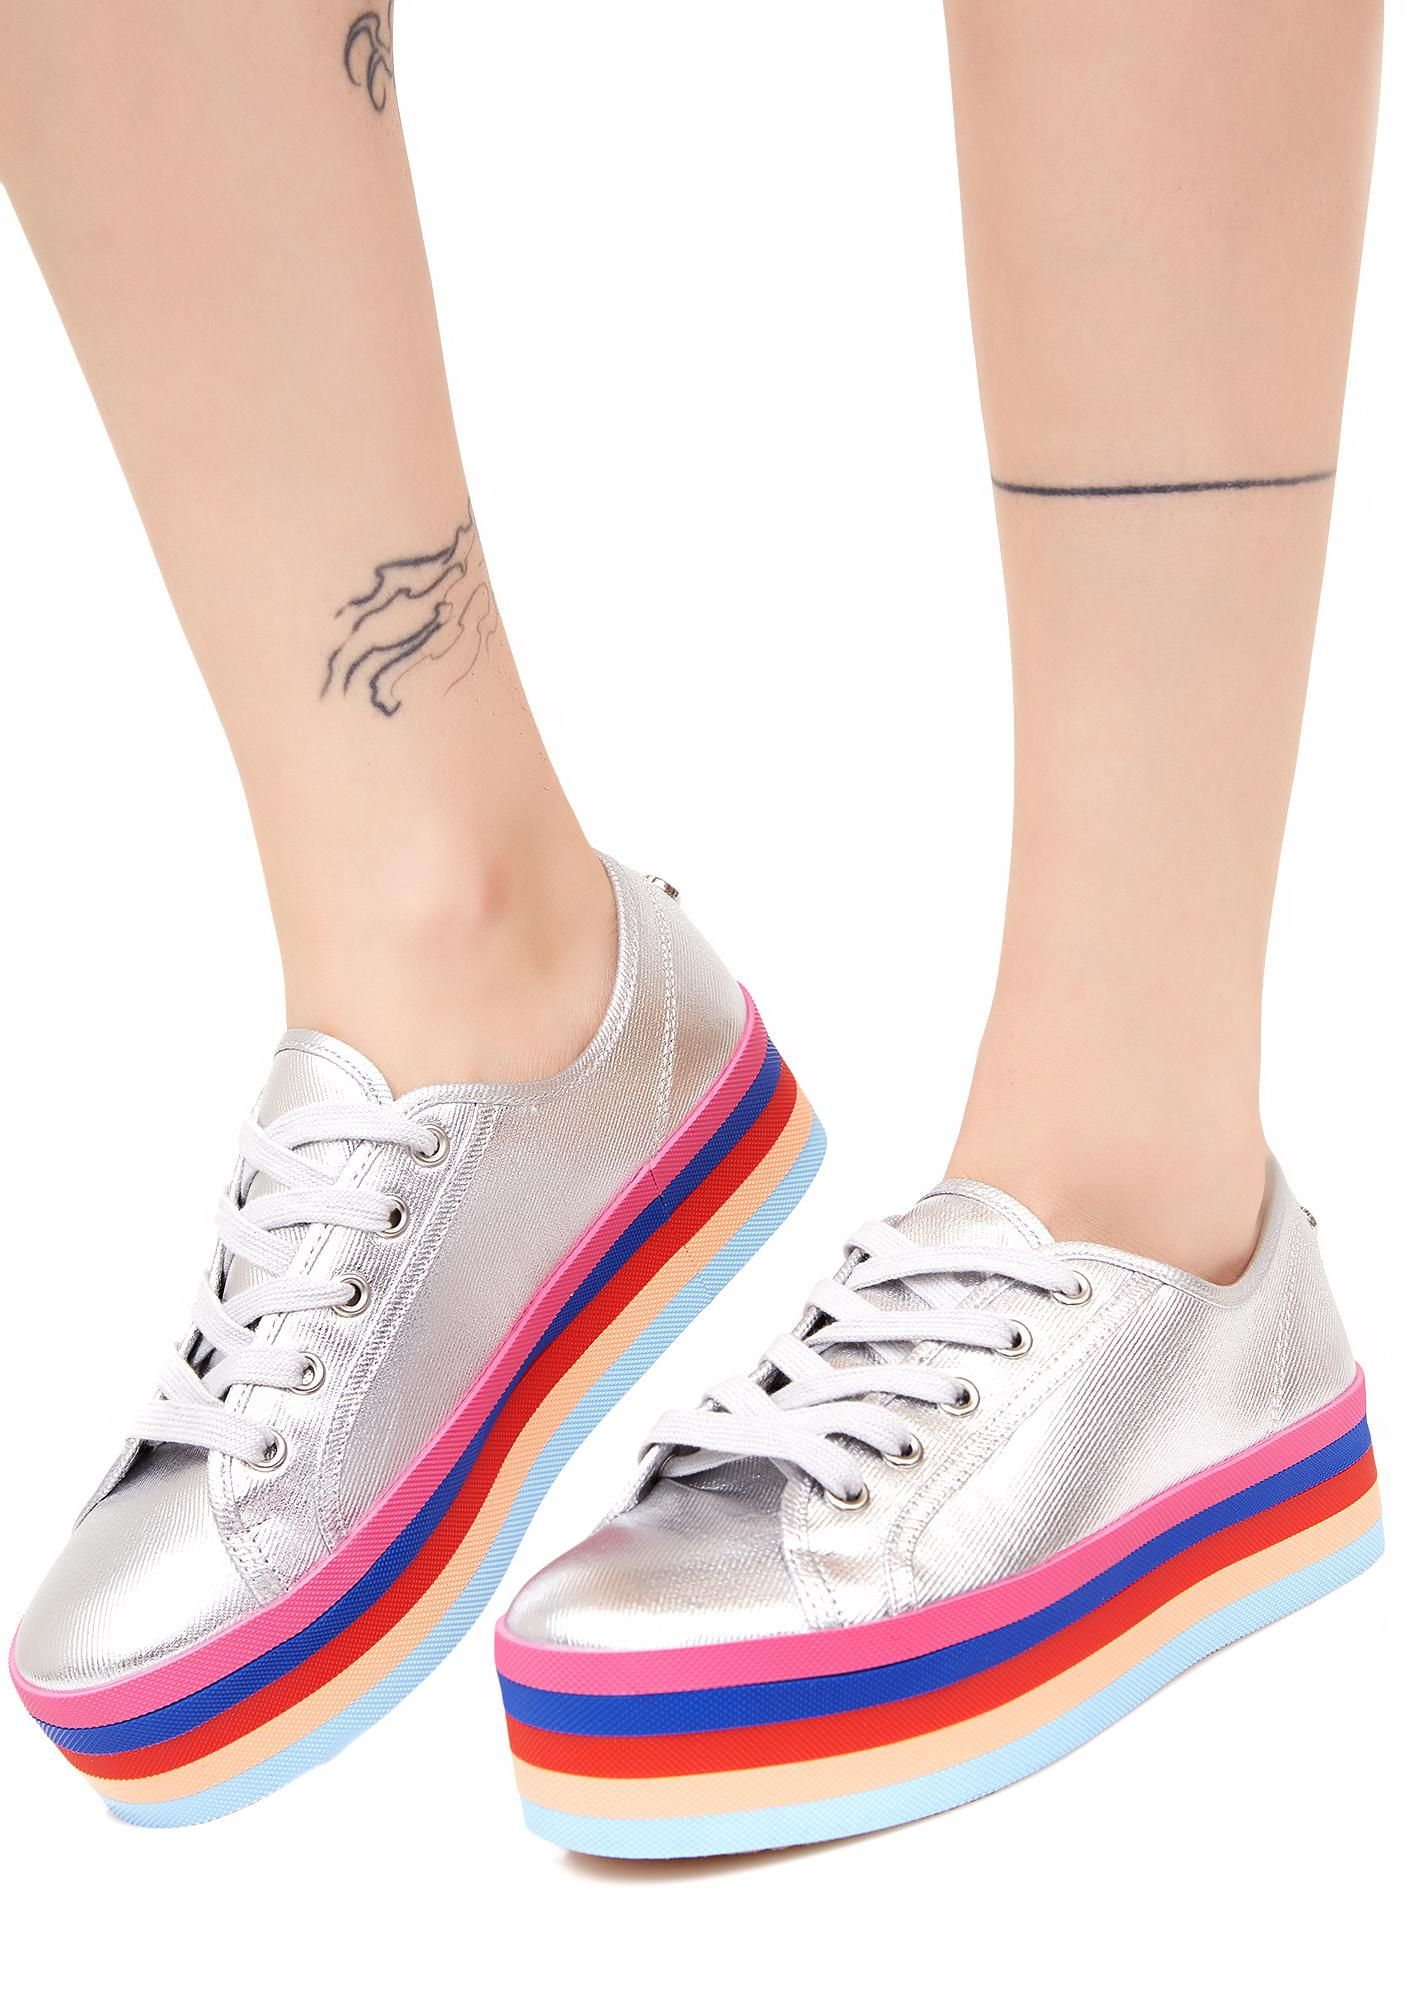 ad55e87bfec Steve Madden Rainbow Sole Lace-Up Shoes will keep it bright N  sunny for  ya. These cute silver shoes have a striped platform sole and a lace-up  front.